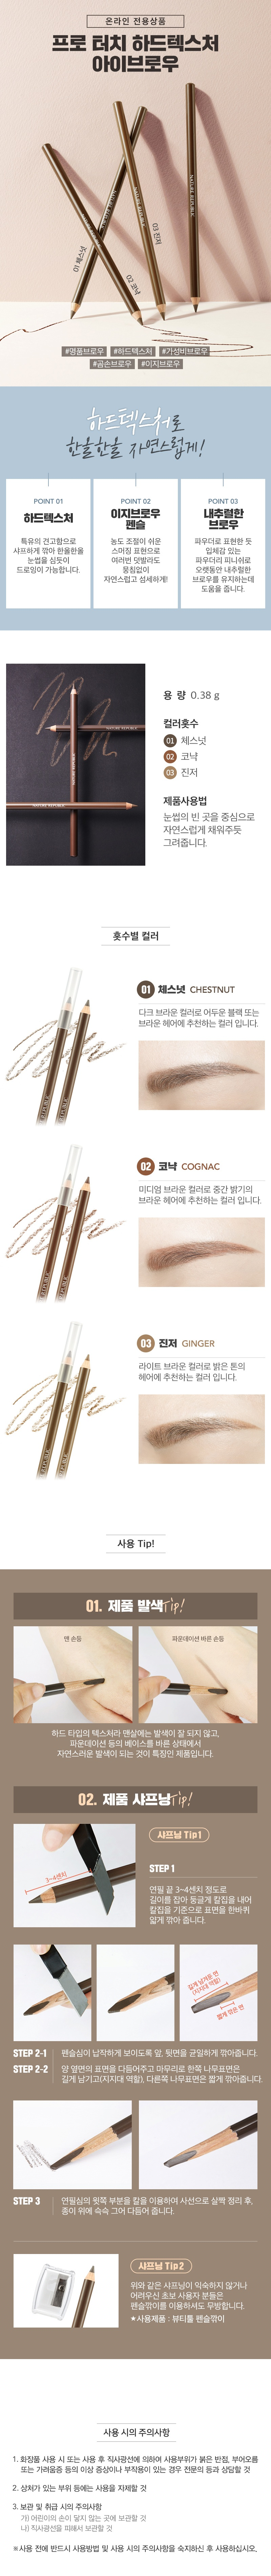 Nature Republic Pro Touch Hard Texture Eyebrow korean cosmetic makeup product online shop malaysia china india1